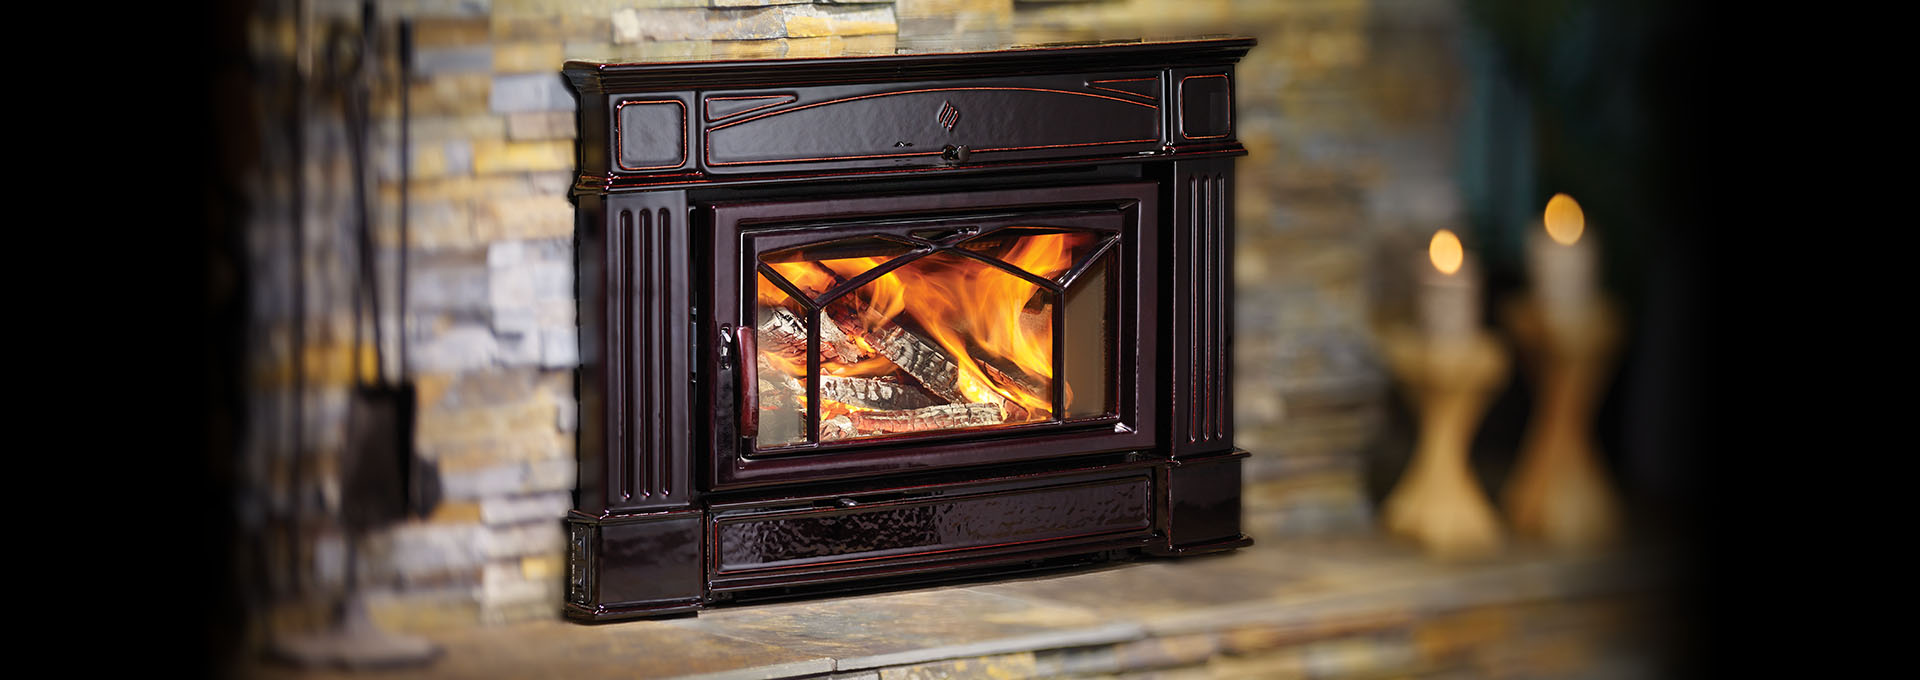 Hampton Cast Iron Fireplaces - Regency Fireplace Products